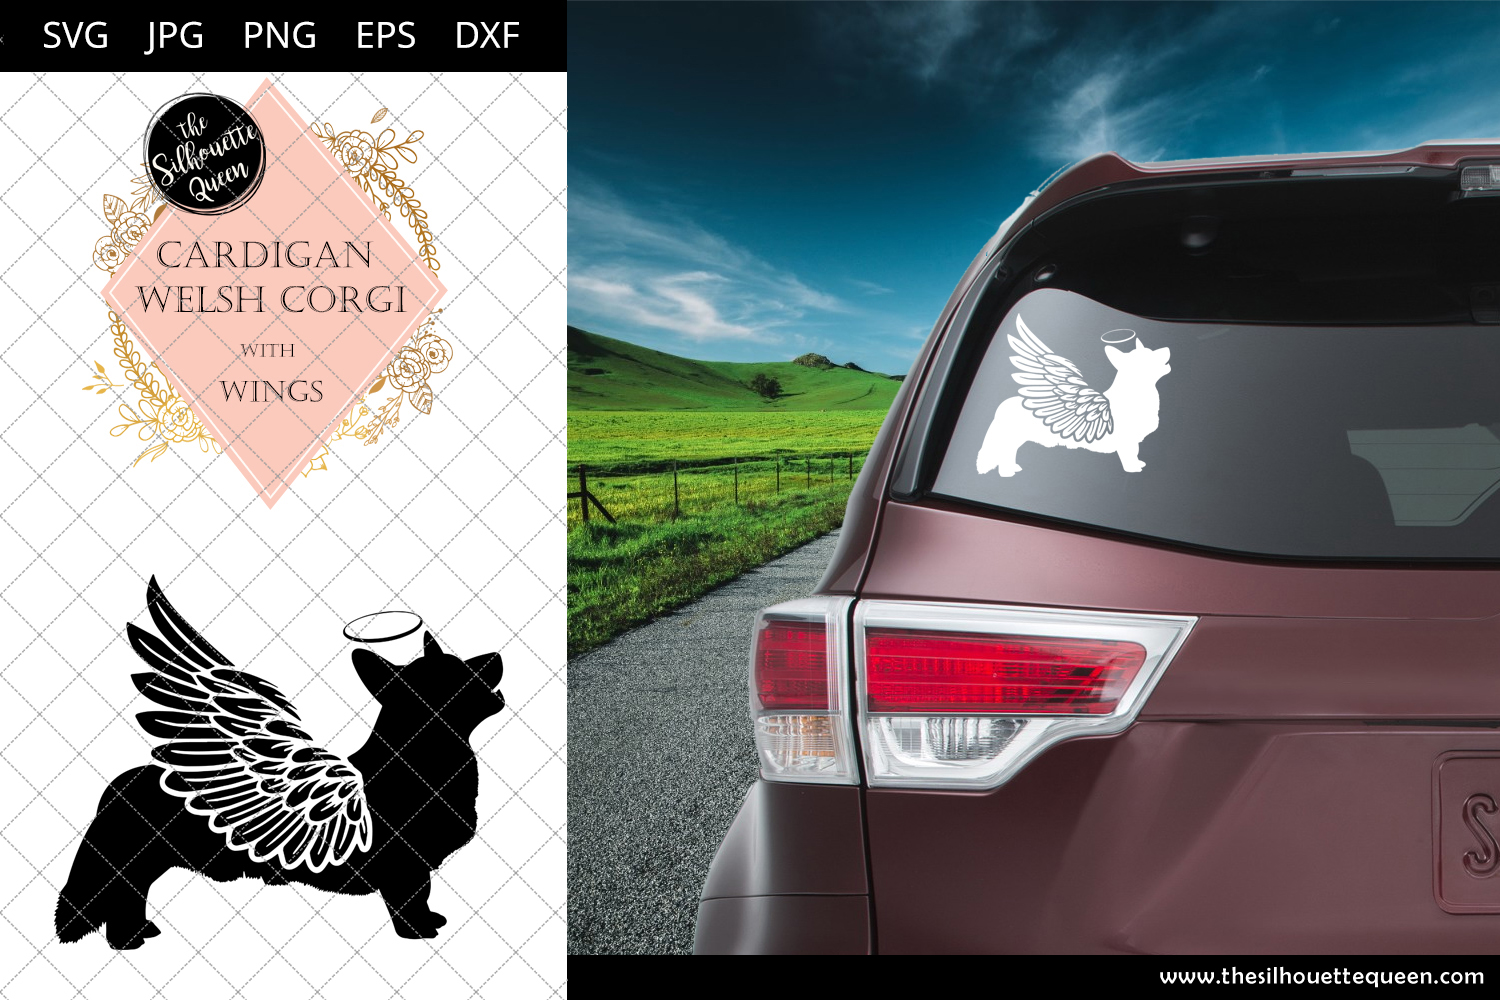 Download Free Cardigan Welsh Corgi 9 With Wings Graphic By for Cricut Explore, Silhouette and other cutting machines.